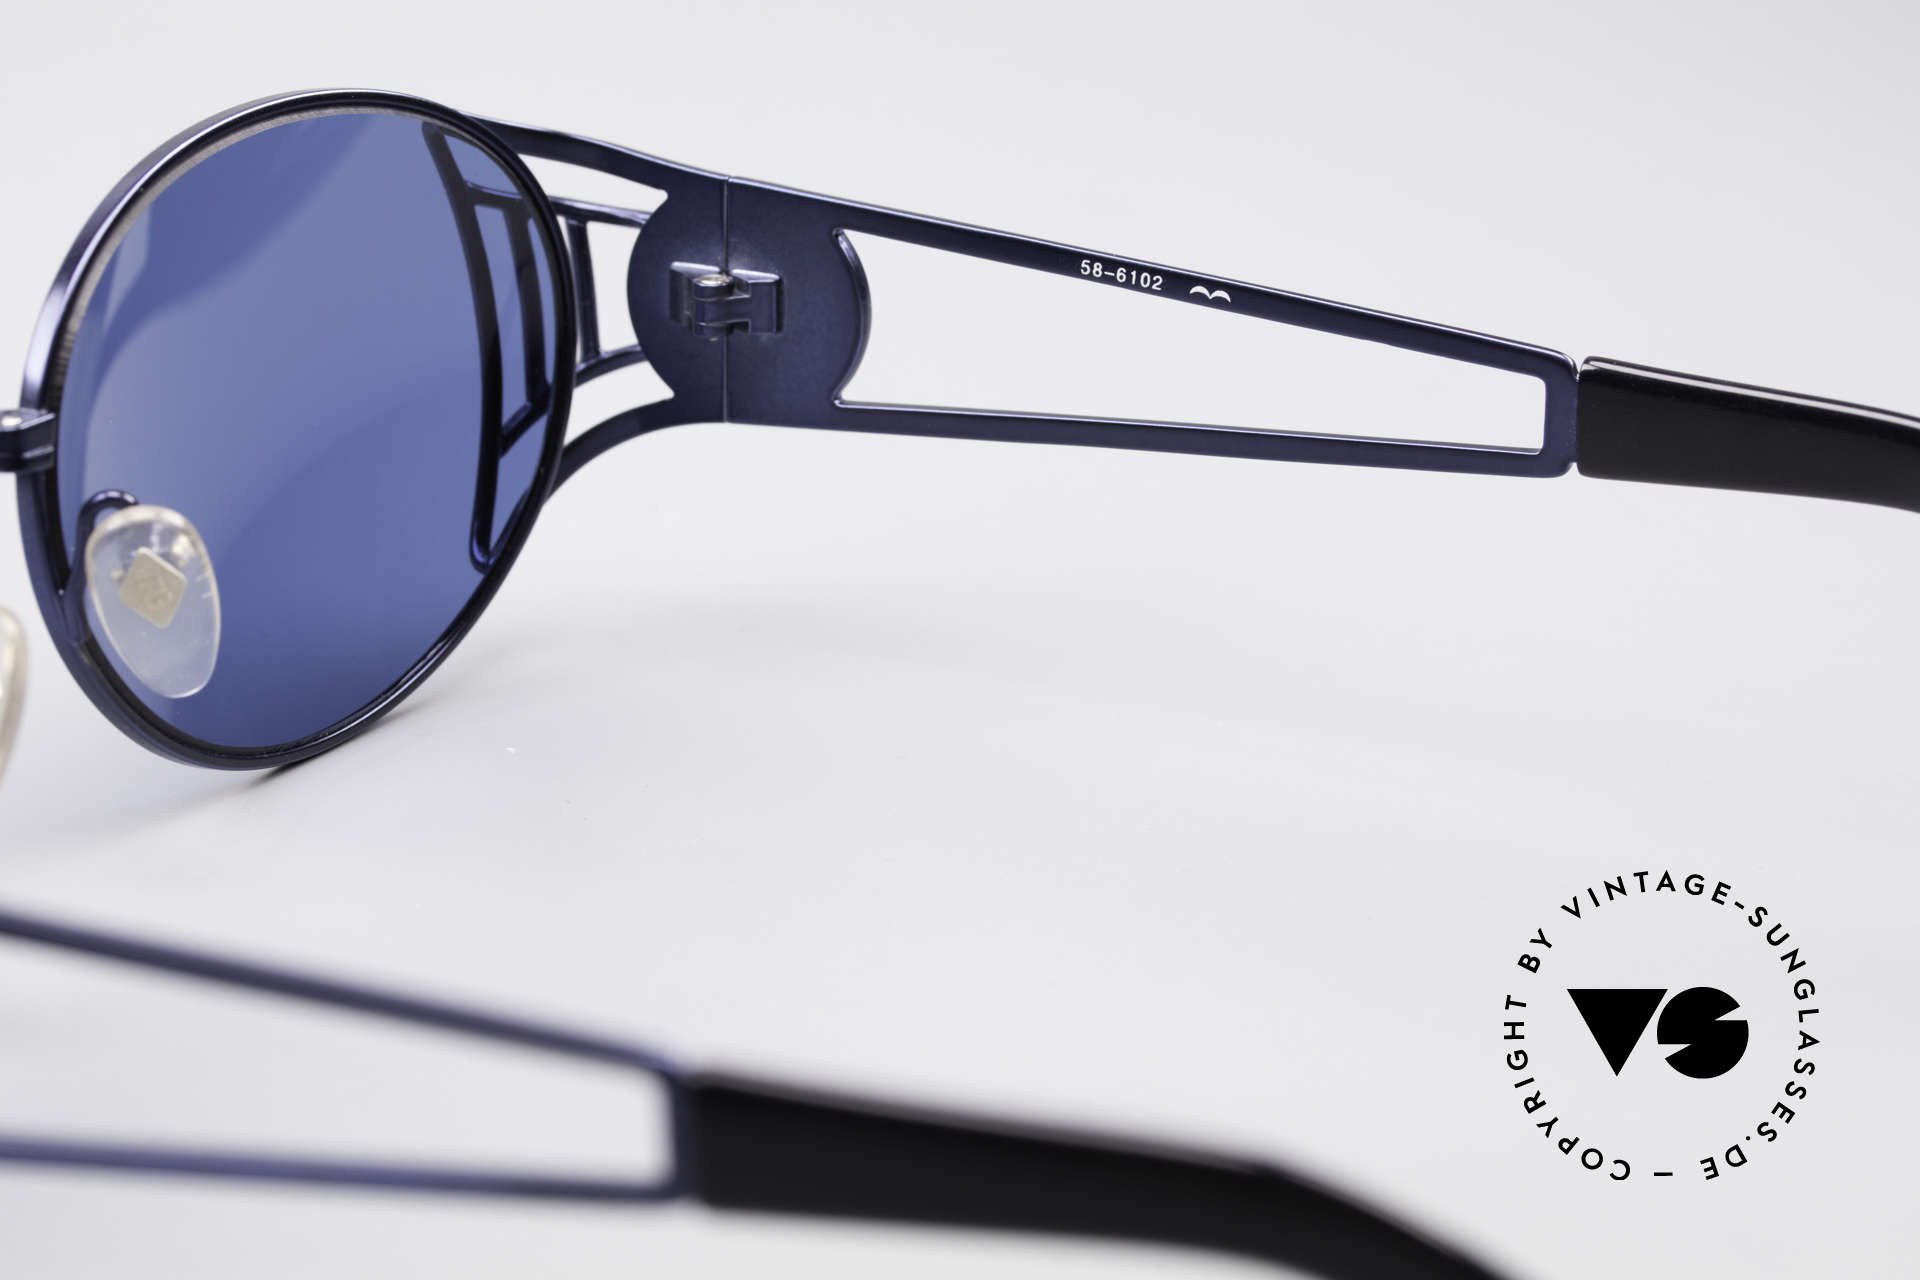 Jean Paul Gaultier 58-6102 Vintage Steampunk Shades, true GAULTIER rarity; a precious collector's item, Made for Men and Women